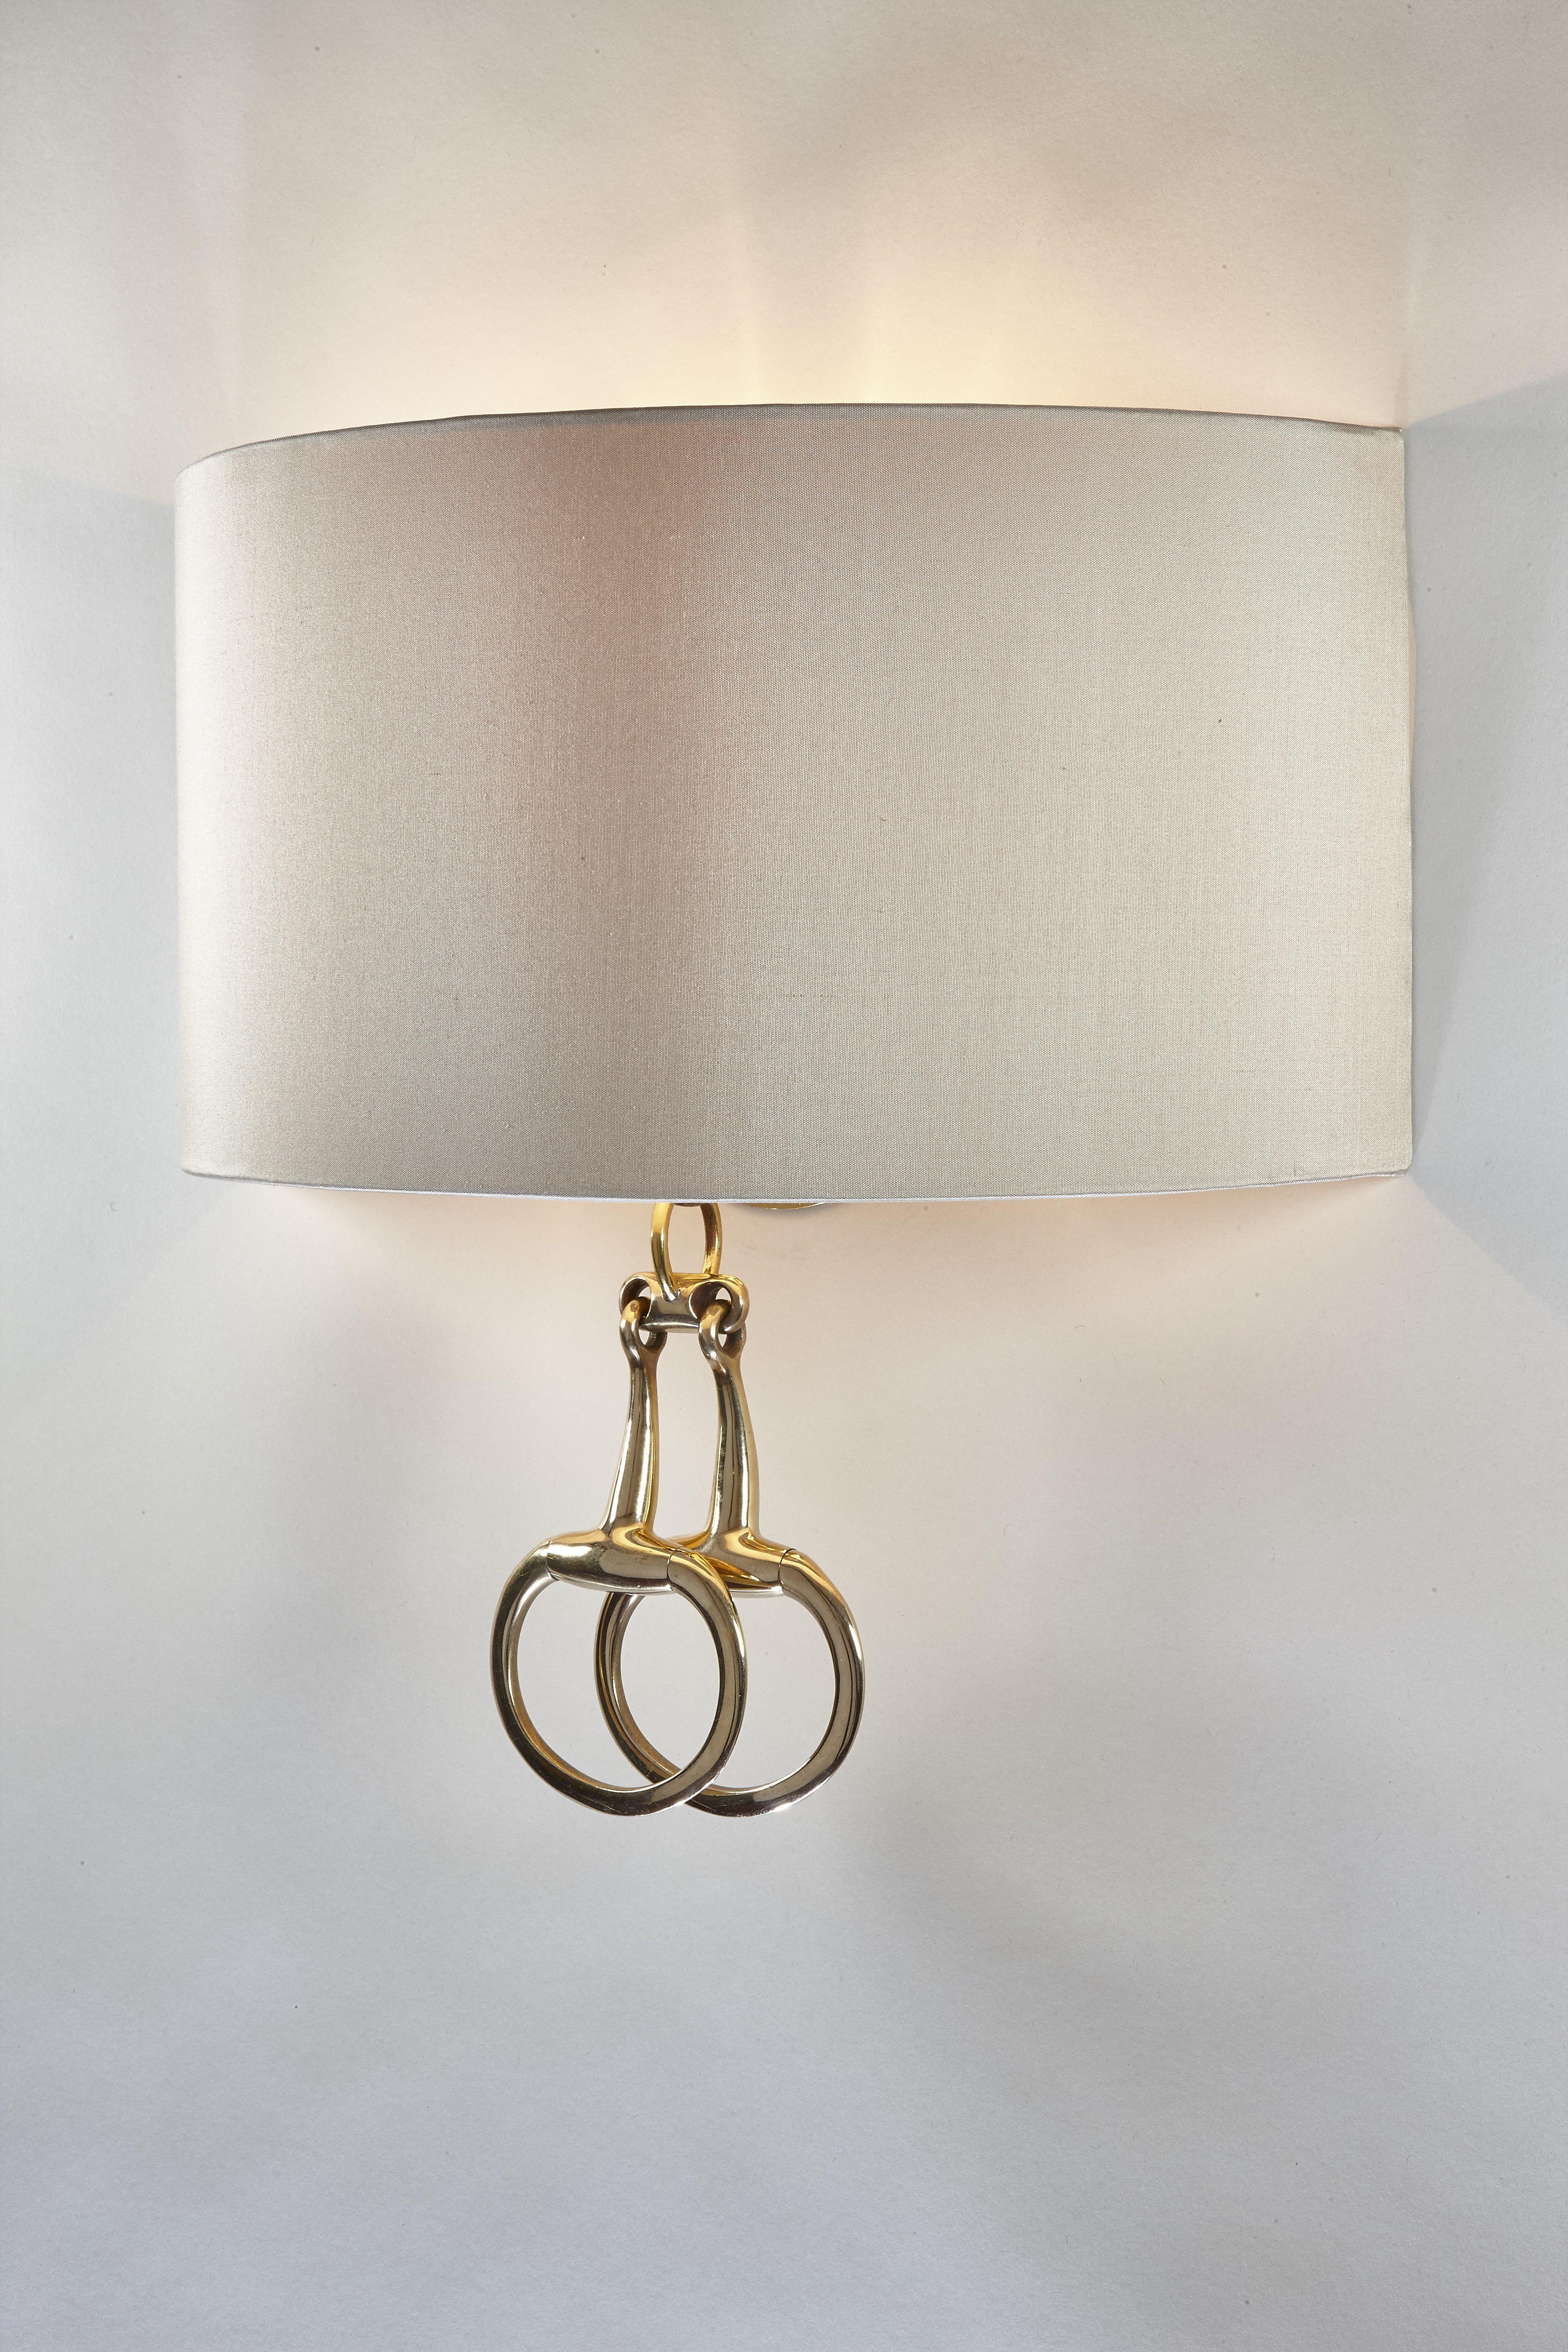 Ronnie wall light made for cocovara interiors by phillips u wood